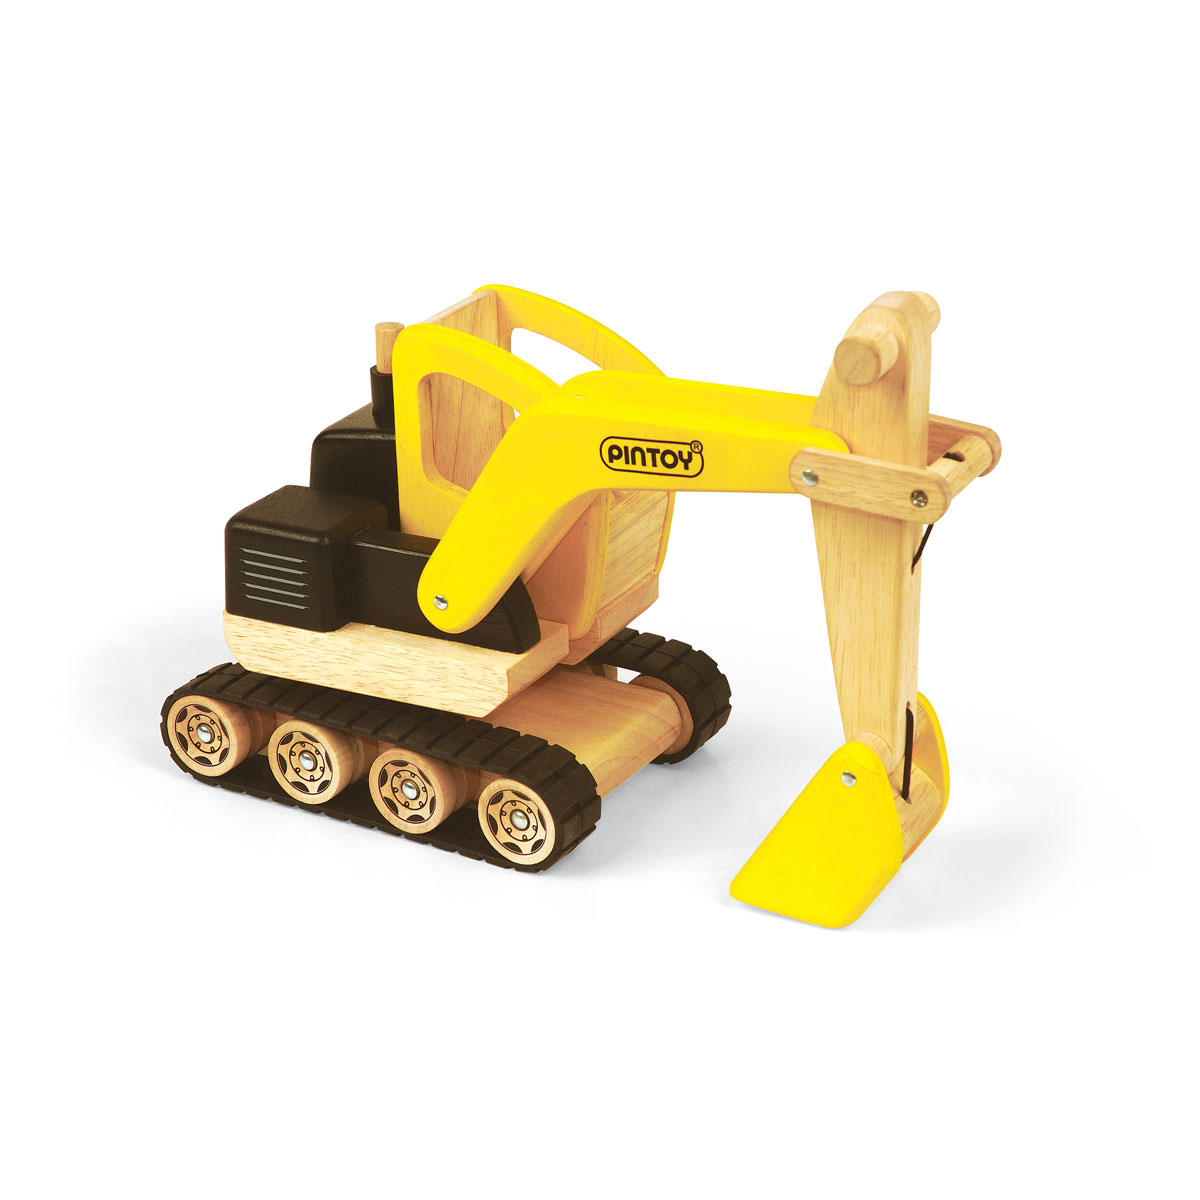 Digging Toys For Boys : Construction digger wooden toys for children